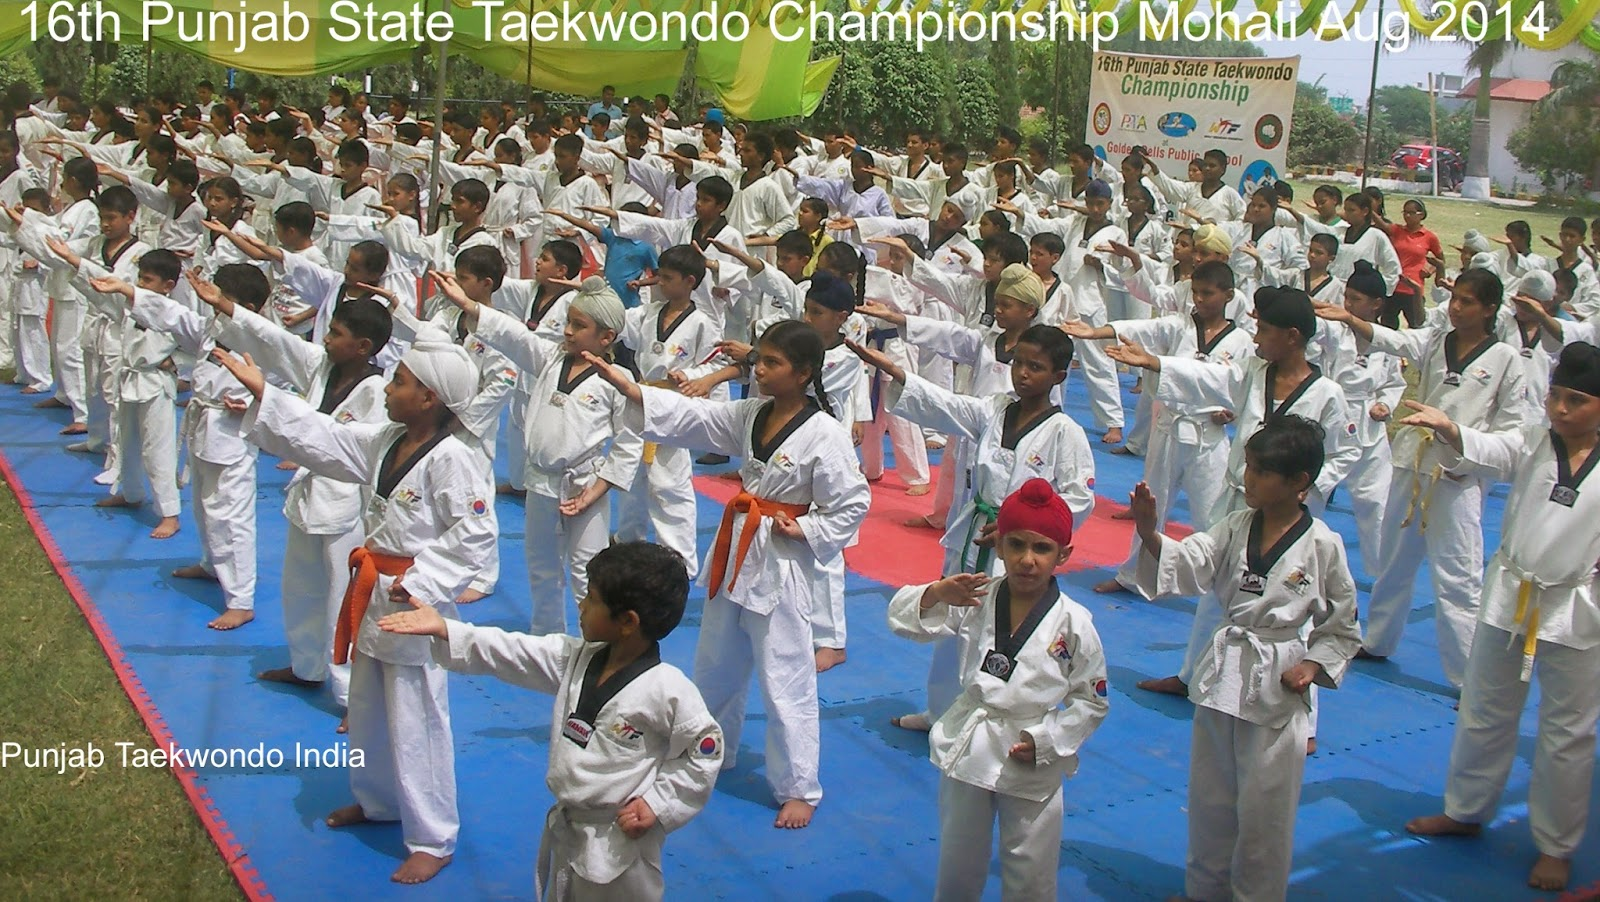 16th Punjab Sstate Taekwondo Championship, Golden Bells Public School, Taekwondo, Martial Arts, Fitness, Tkd, Championships, Training, Classes, Coaching, Self-defence, Girls, Women, Safety, Fitness,  Mohali, SAS Nagar, near Chandigarh, Punjab, India, Shere, Lions, Videos, Movies, Master, Er. Satpal Singh Rehal, Rehal, Academy, Association, Federation, Clubs, Satpal Rehal, Korean Judo Karate, Chandigarh, Reiki, Healing, Kot Maira, Garhshankar, Hoshiarpur, Jalandhar, Amritsar, Patiala, Mansa, Ludhiana, Ferozepur, Sangrur, Moga, Pathankot, Gurdaspur, Barnala, Nawanshahar, Ropar, Ajitgarh, Fatehgarh Sahib, Taran Taran, Patti, Faridkot, Winners, Medal Ceremony, Chief Guest, TAP, PTA, Grandmaster, Reiki, TFI, Jimmy R Jagtiani, Lucknow, School, Games